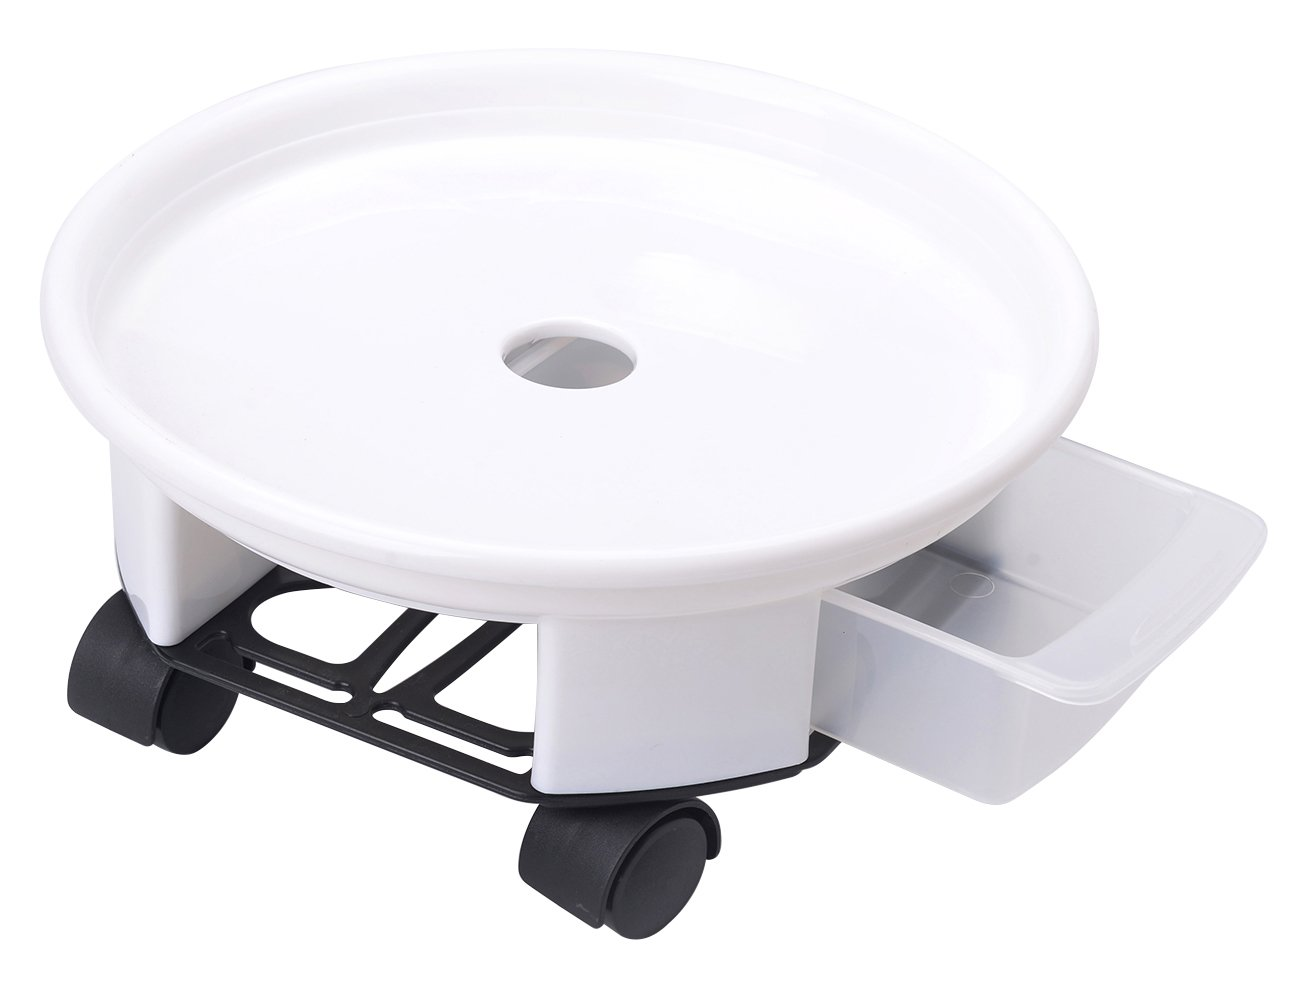 10.6'' Plant Caddy,Round Plant Dolly Trolley Saucer Moving Tray Pallet with Wheels and a Water Container,White,90 Count by Zhanwang